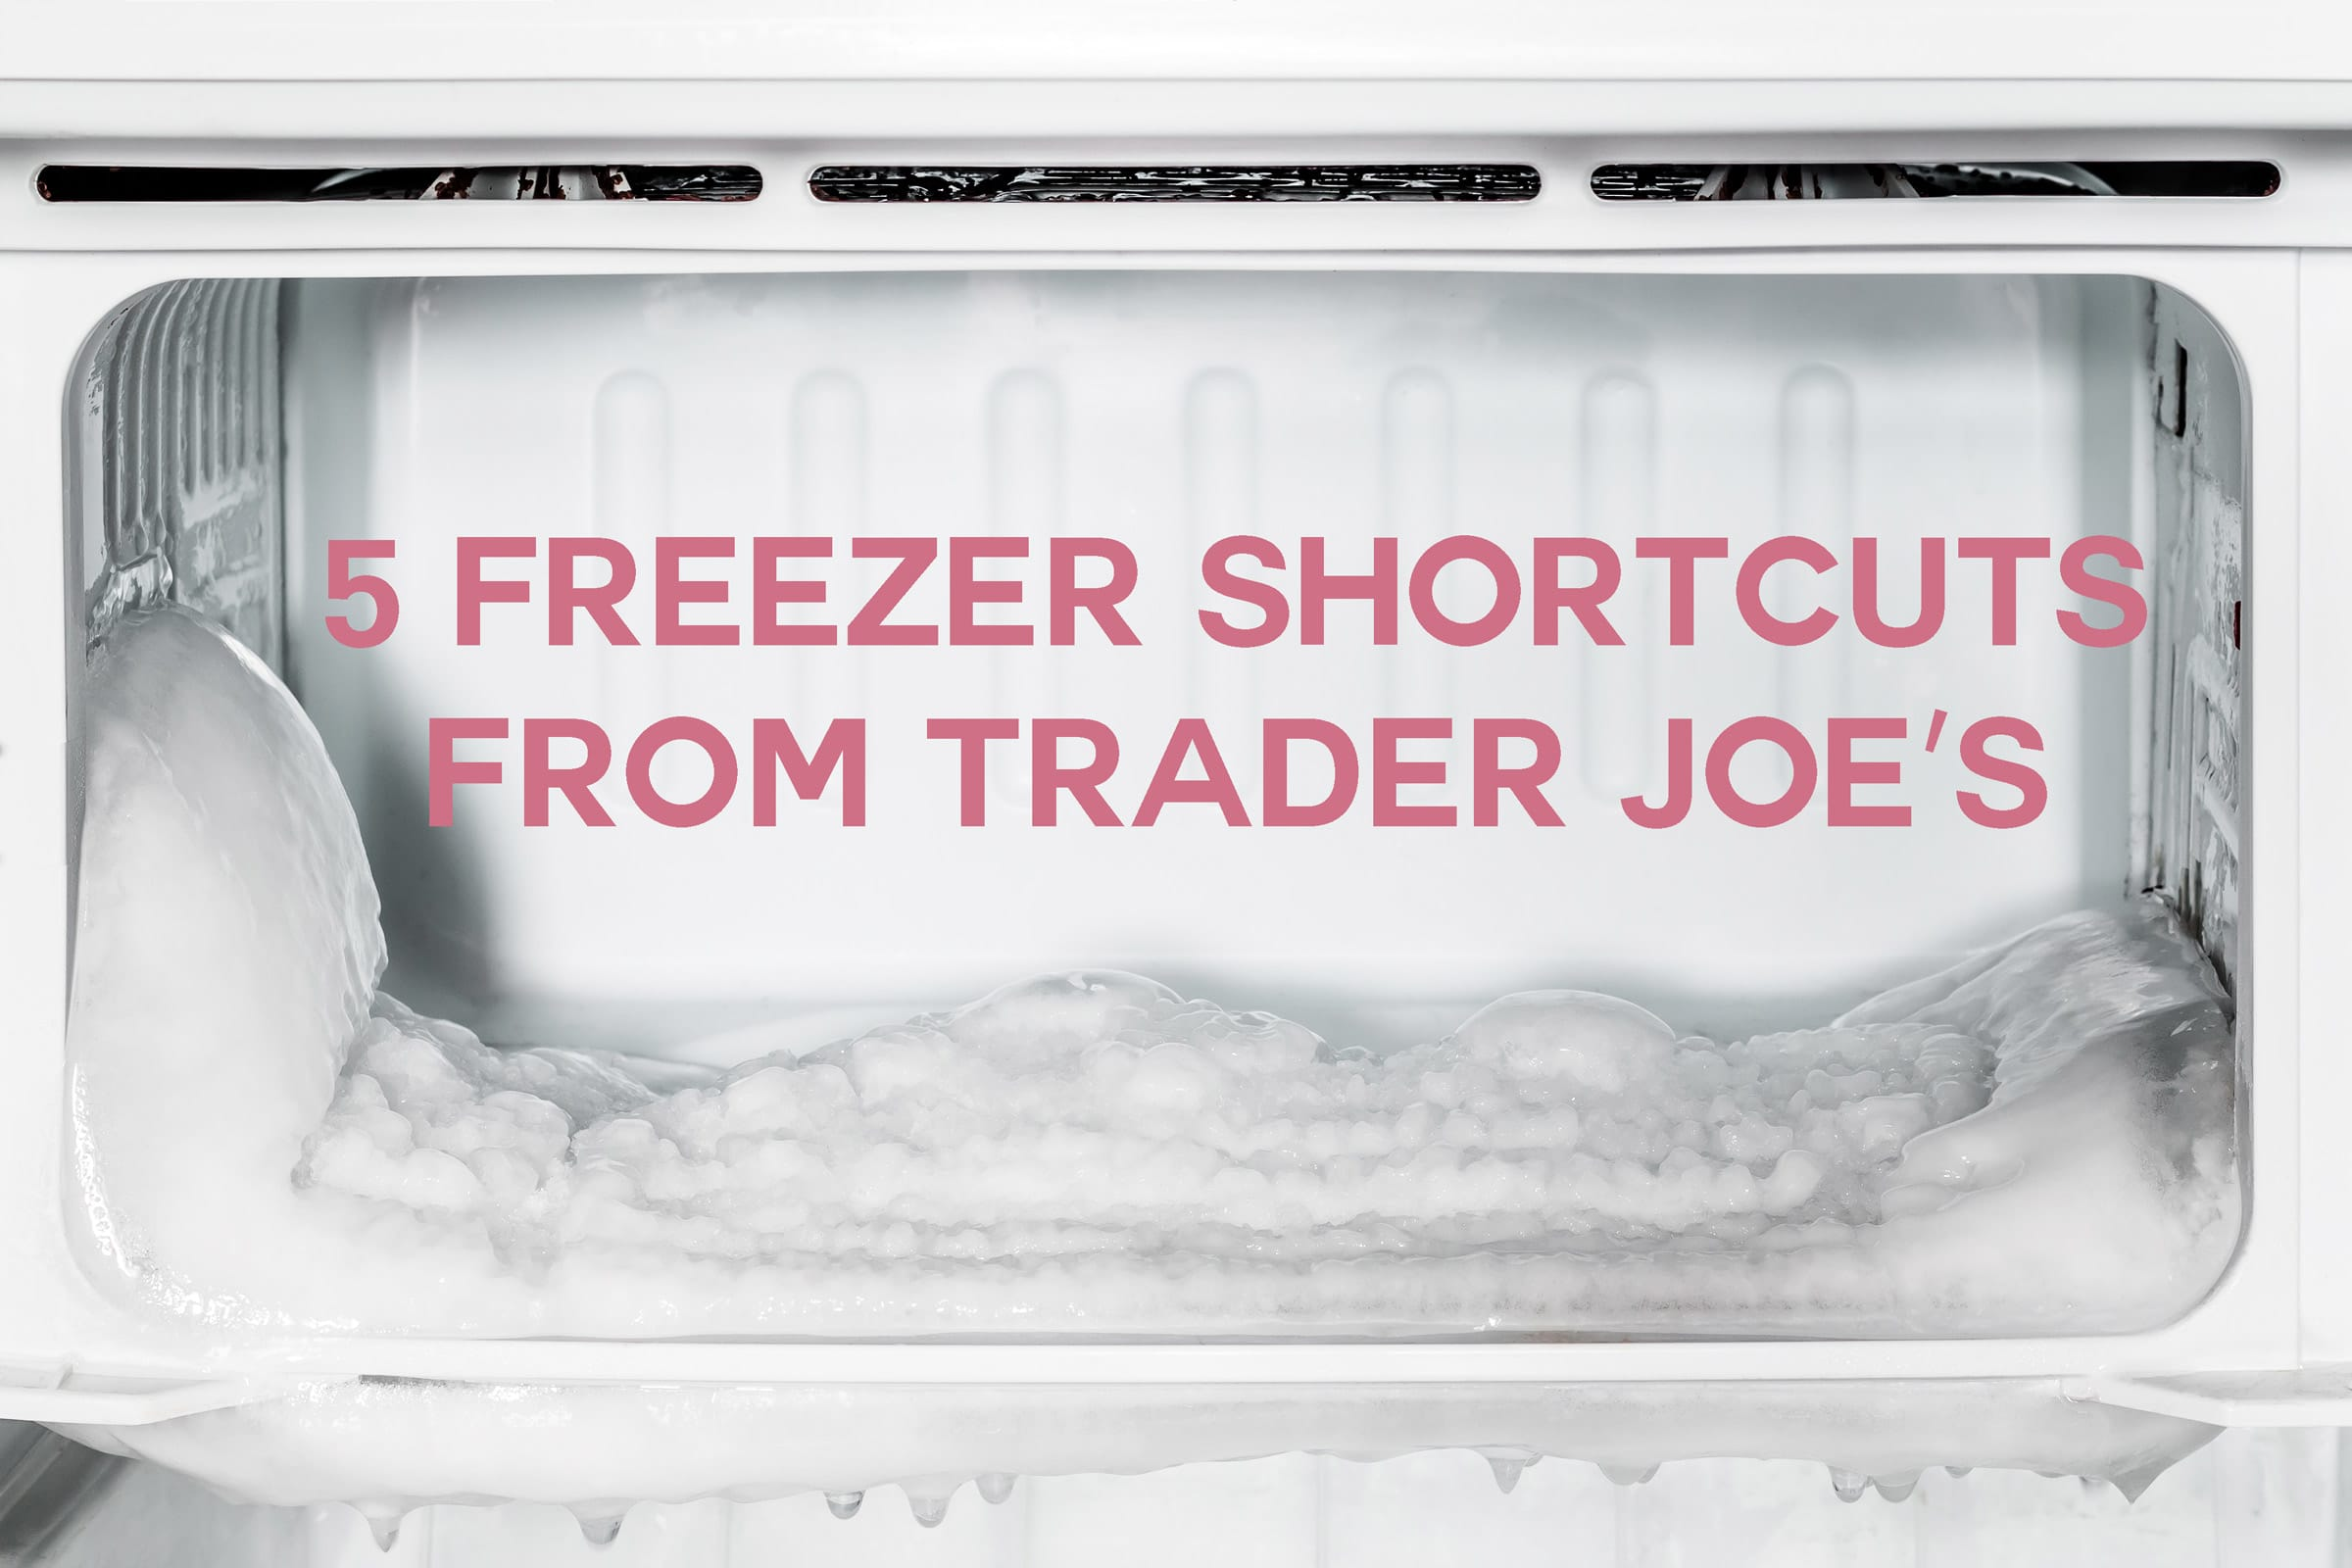 5 Freezer Shortcuts Only Trader Joe's Makes Possible